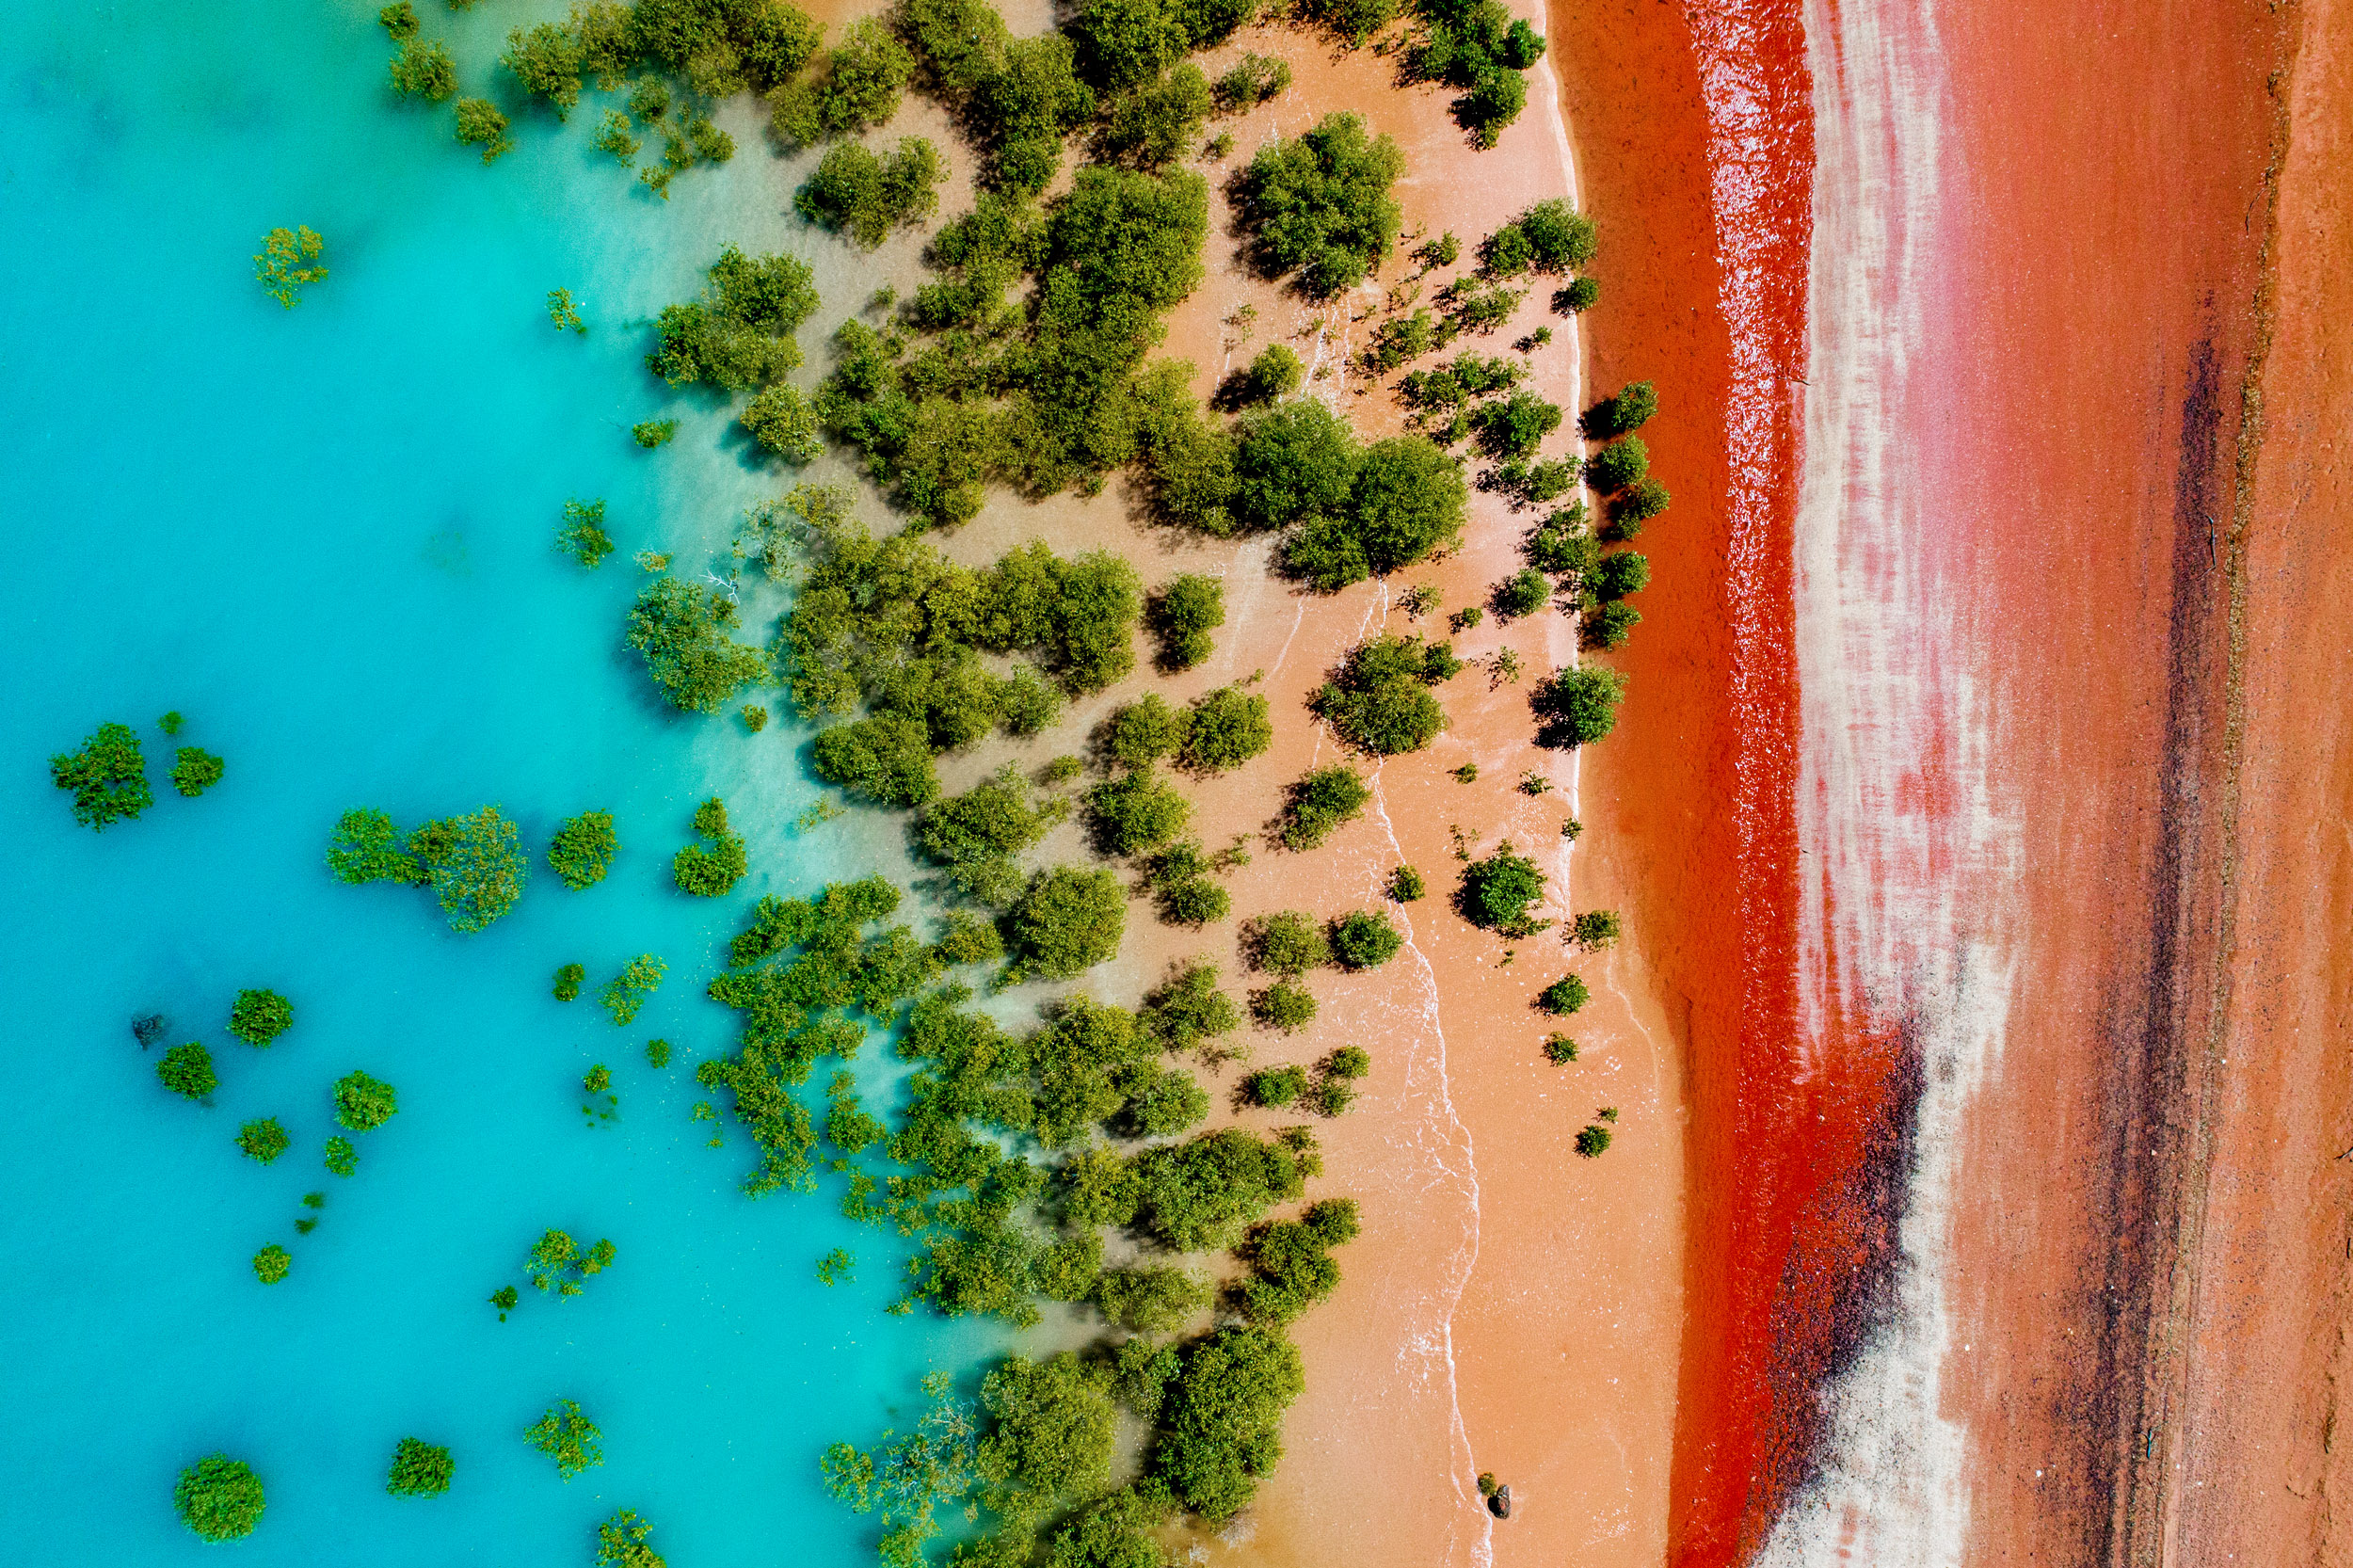 broome-western-australia-colour-contrasts.jpg